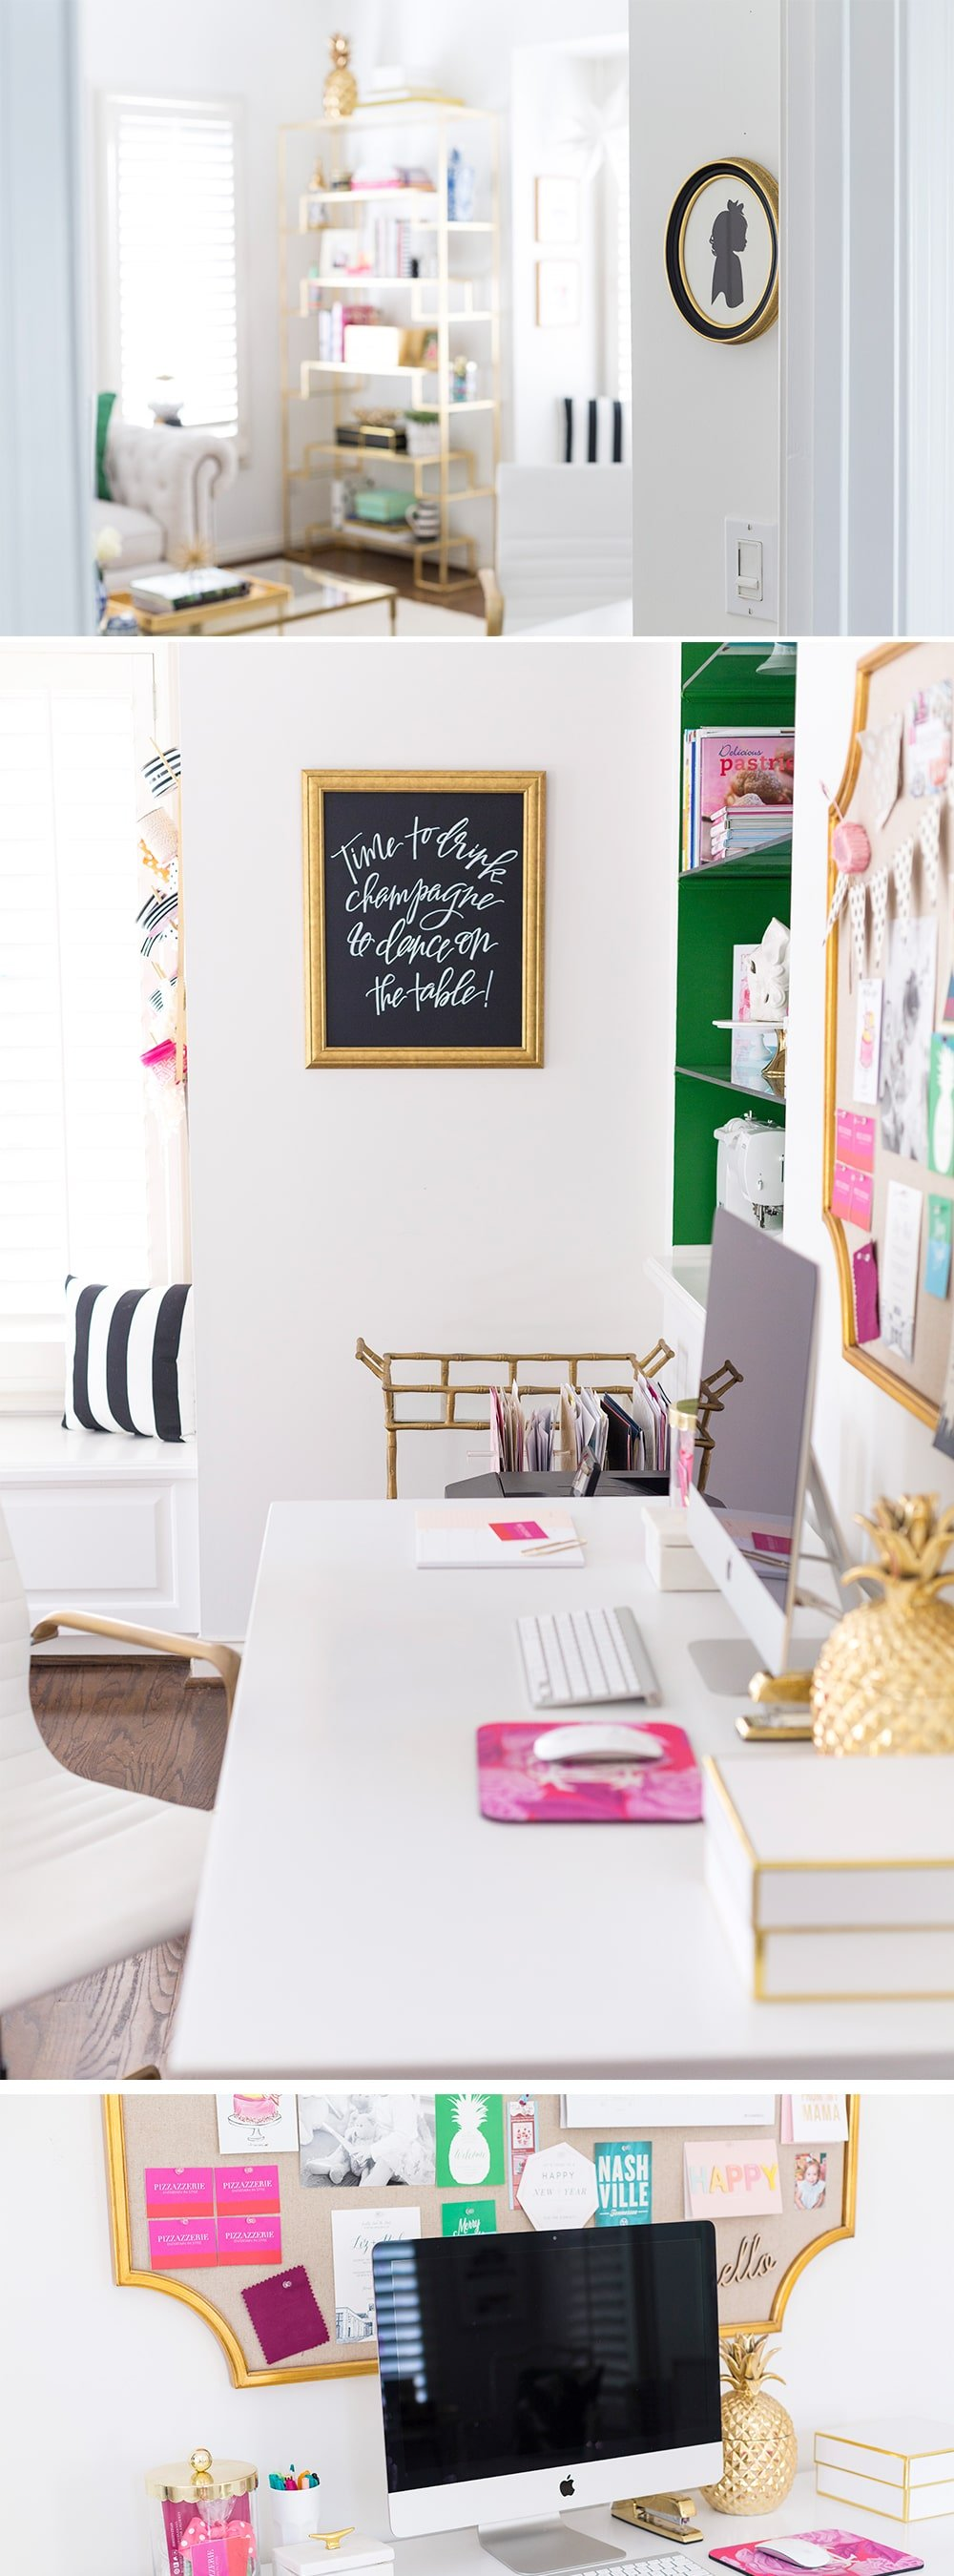 Home Office Reveal: Chic Blog Office of Pizzazzerie.com